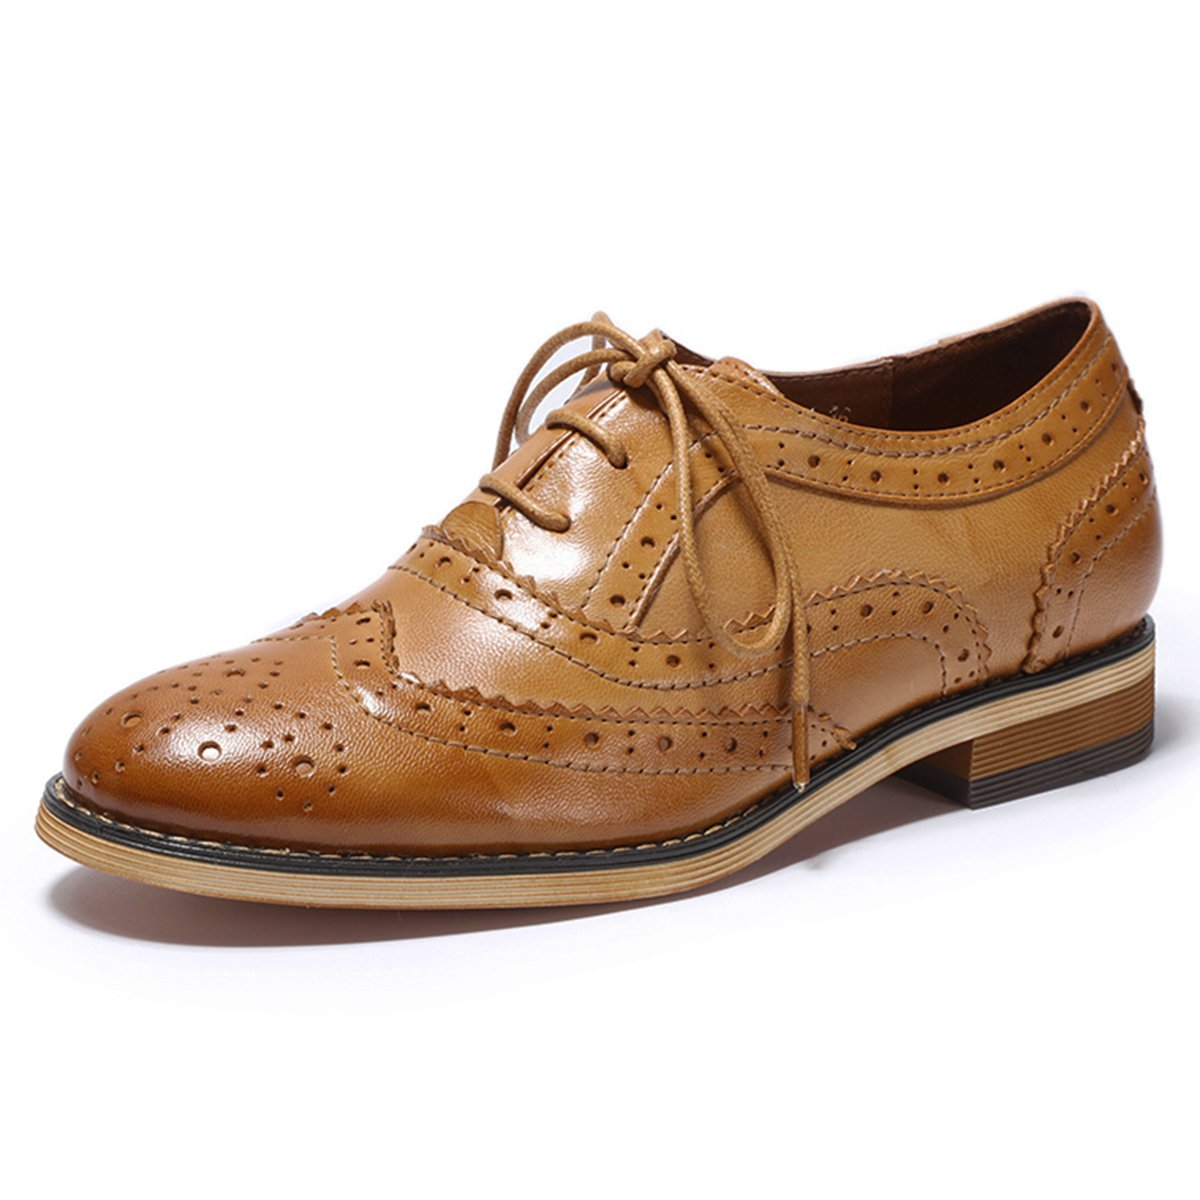 Mona Flying Women's Leather Perforated Lace-up Oxfords Shoes for Women Wingtip Multicolor Brougue Shoes (8, Brown 2)